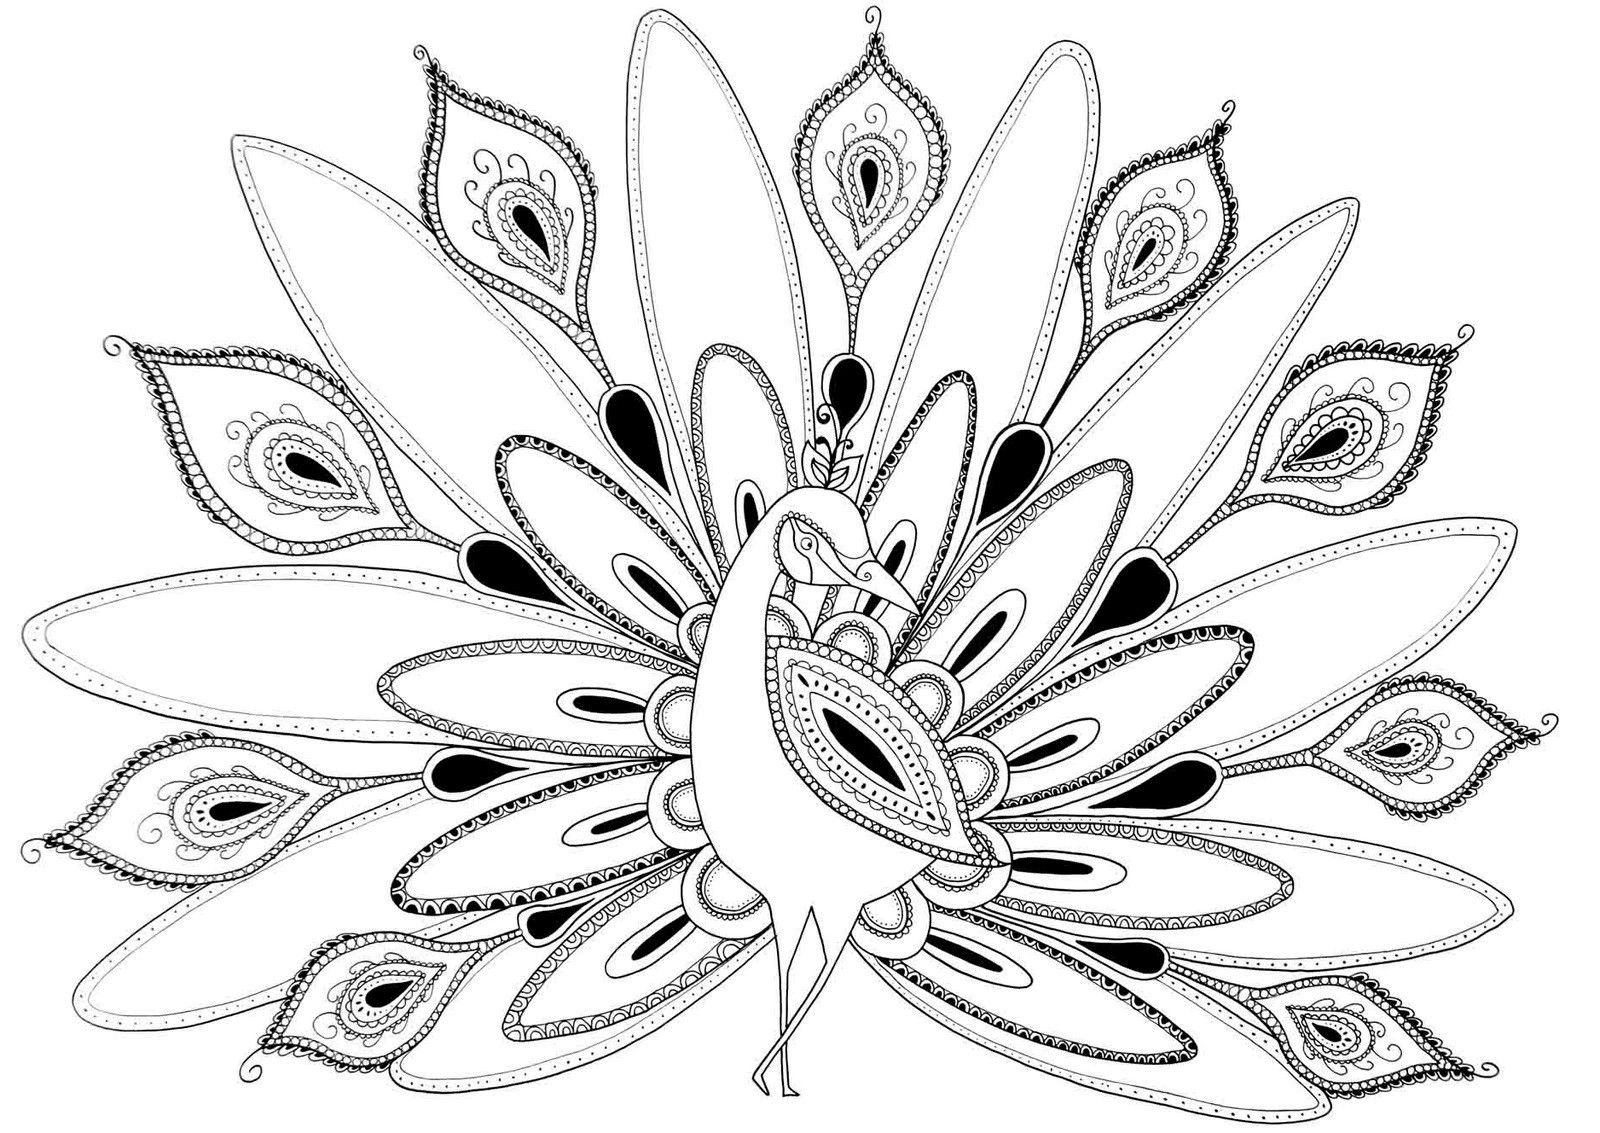 Cool Coloring Pages For Adults Peacock Az Coloring Pages Coloring Pages Peacock